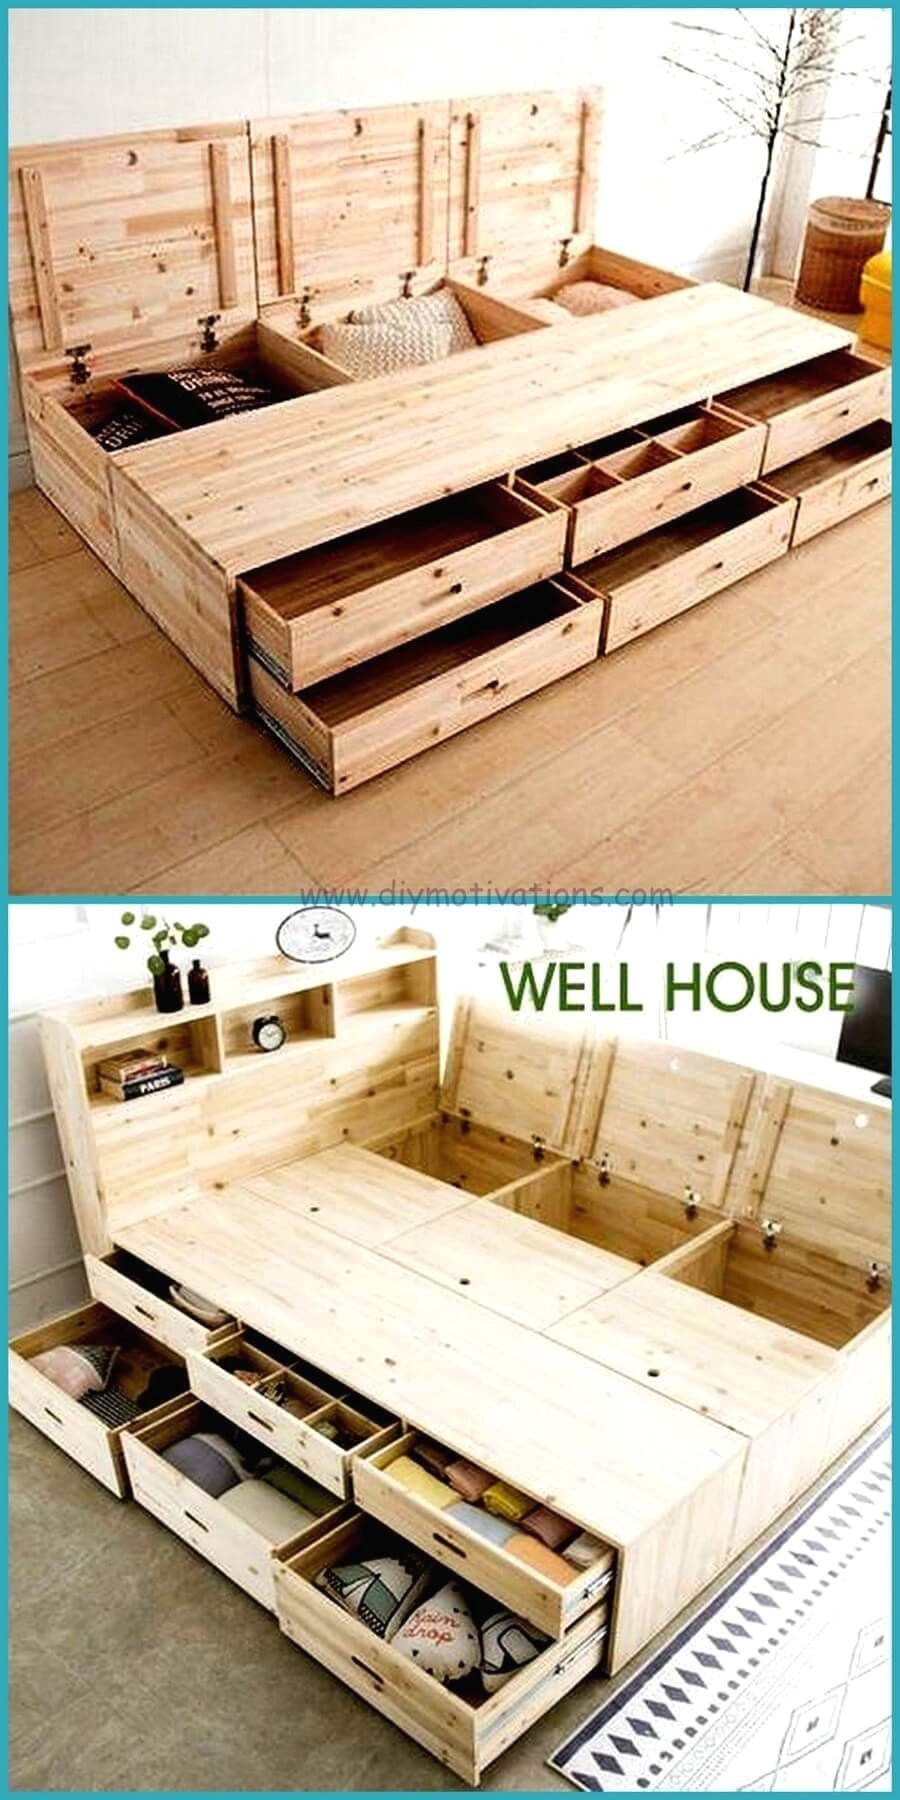 How to make a DIY Pallet Bed? #woodpalletbeds